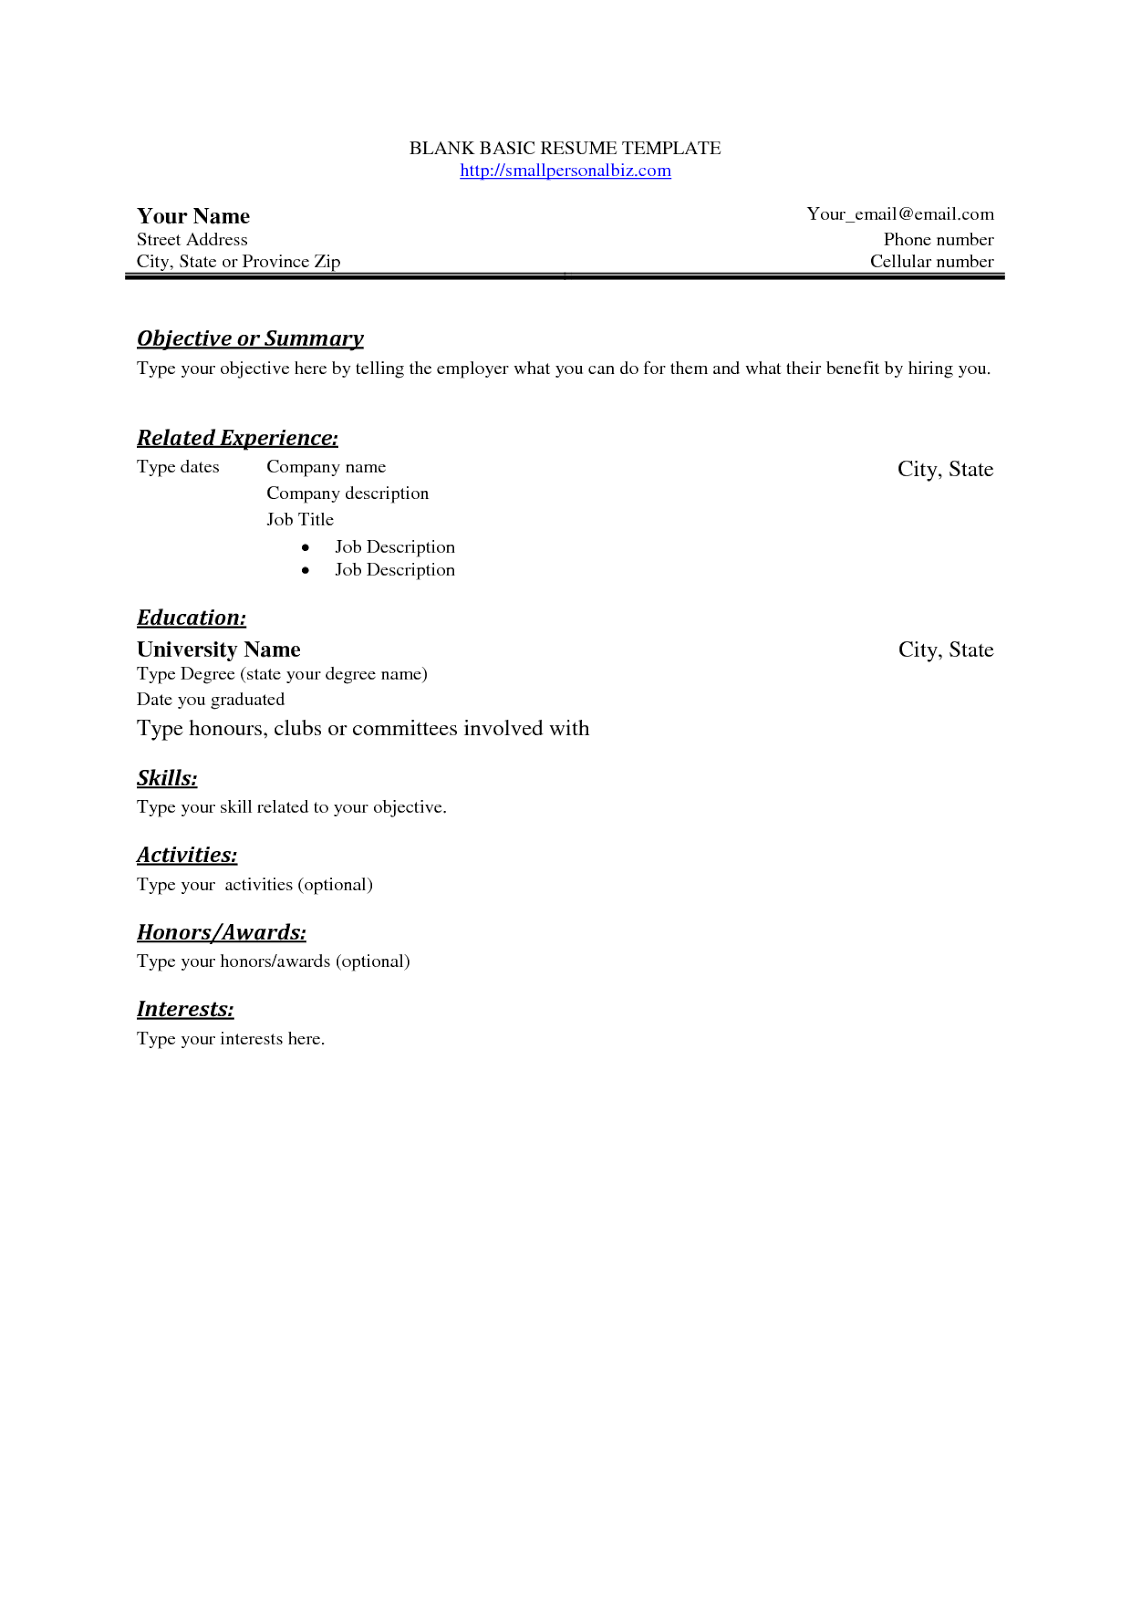 standard resume format usa sample customer service resume standard resume format usa cv template standard professional format careeroneau basic blank resume sample blank